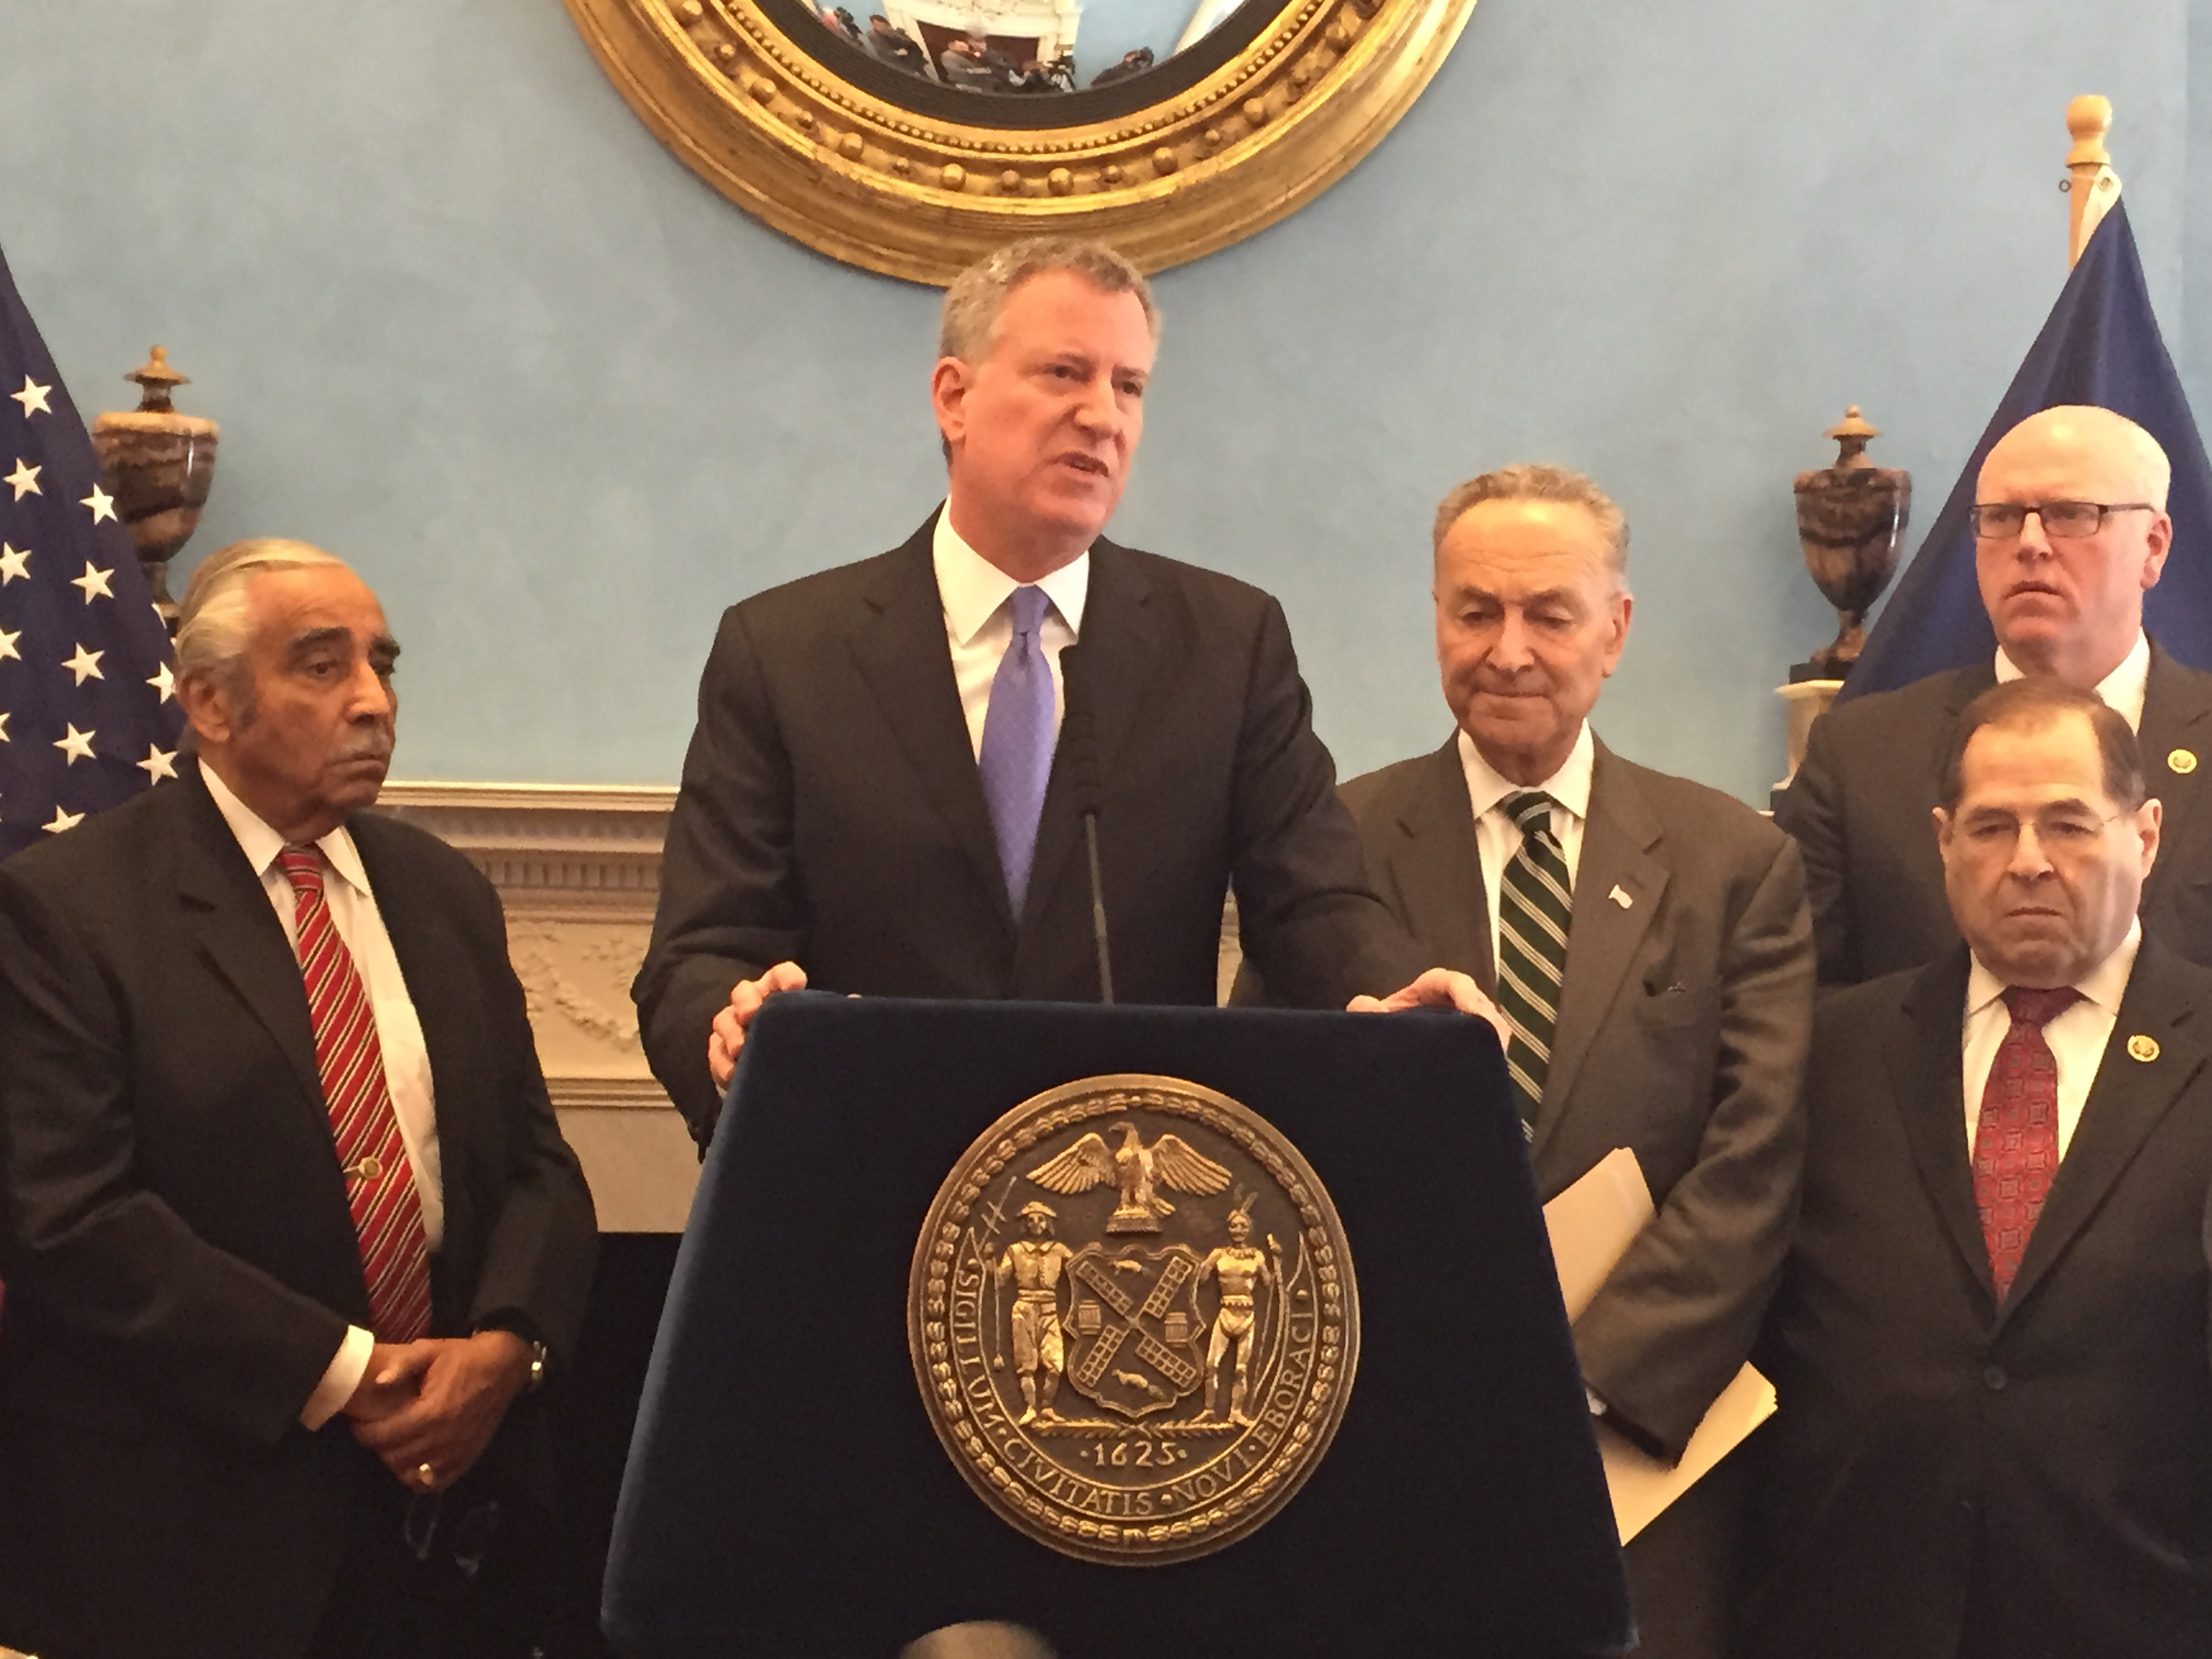 Mayor Bill de Blasio today with members of New York City's congressional delegation. (Photo: Jillian Jorgensen/New York Observer)